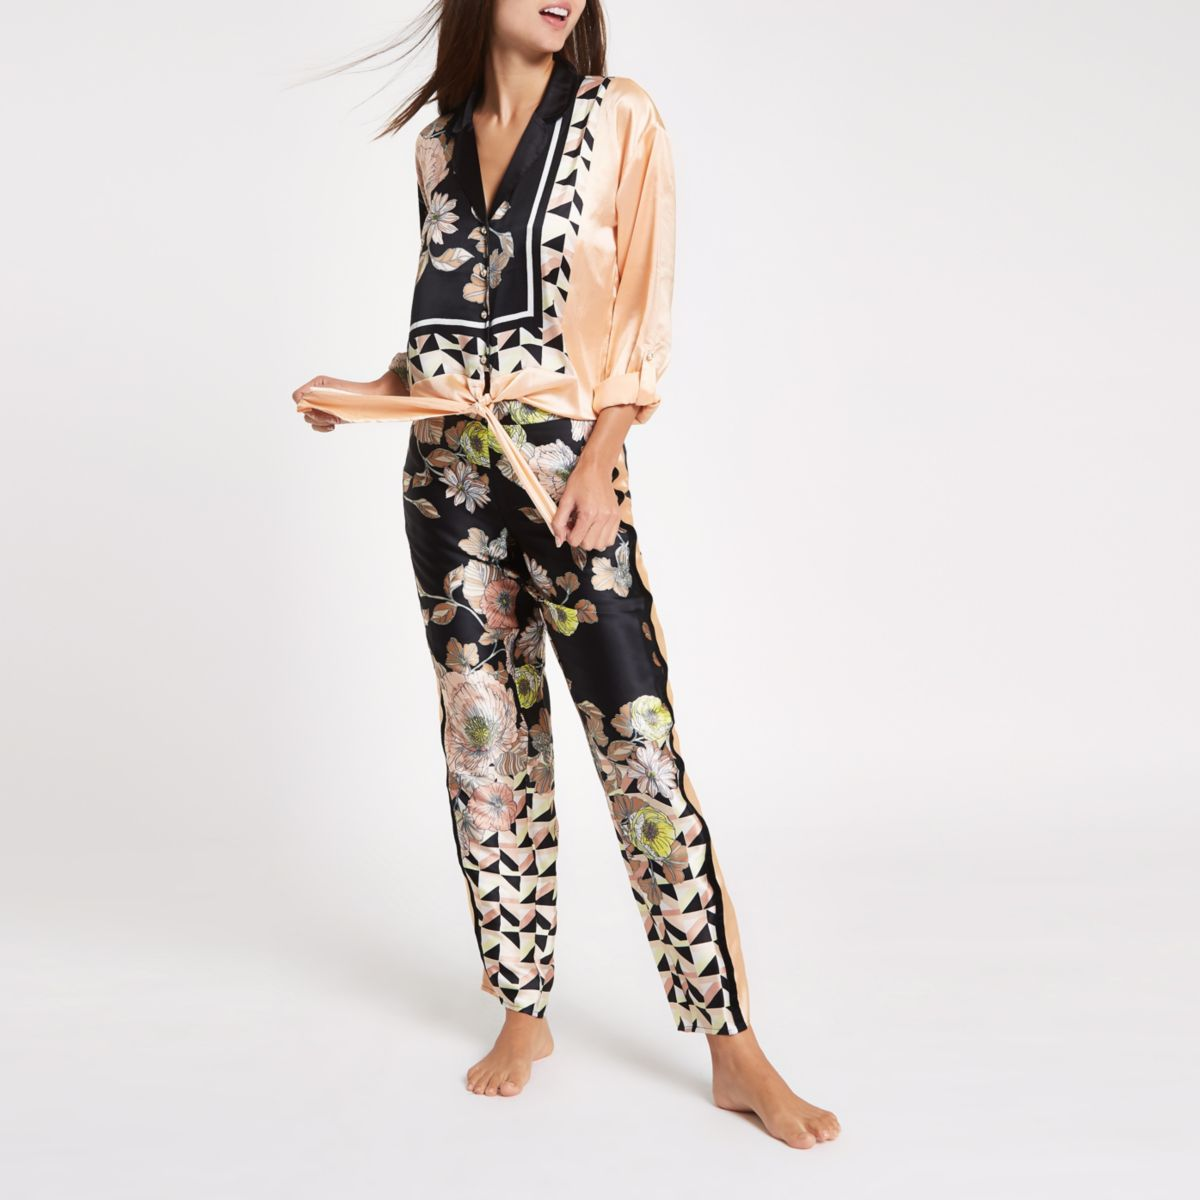 Black satin floral print pajama pants